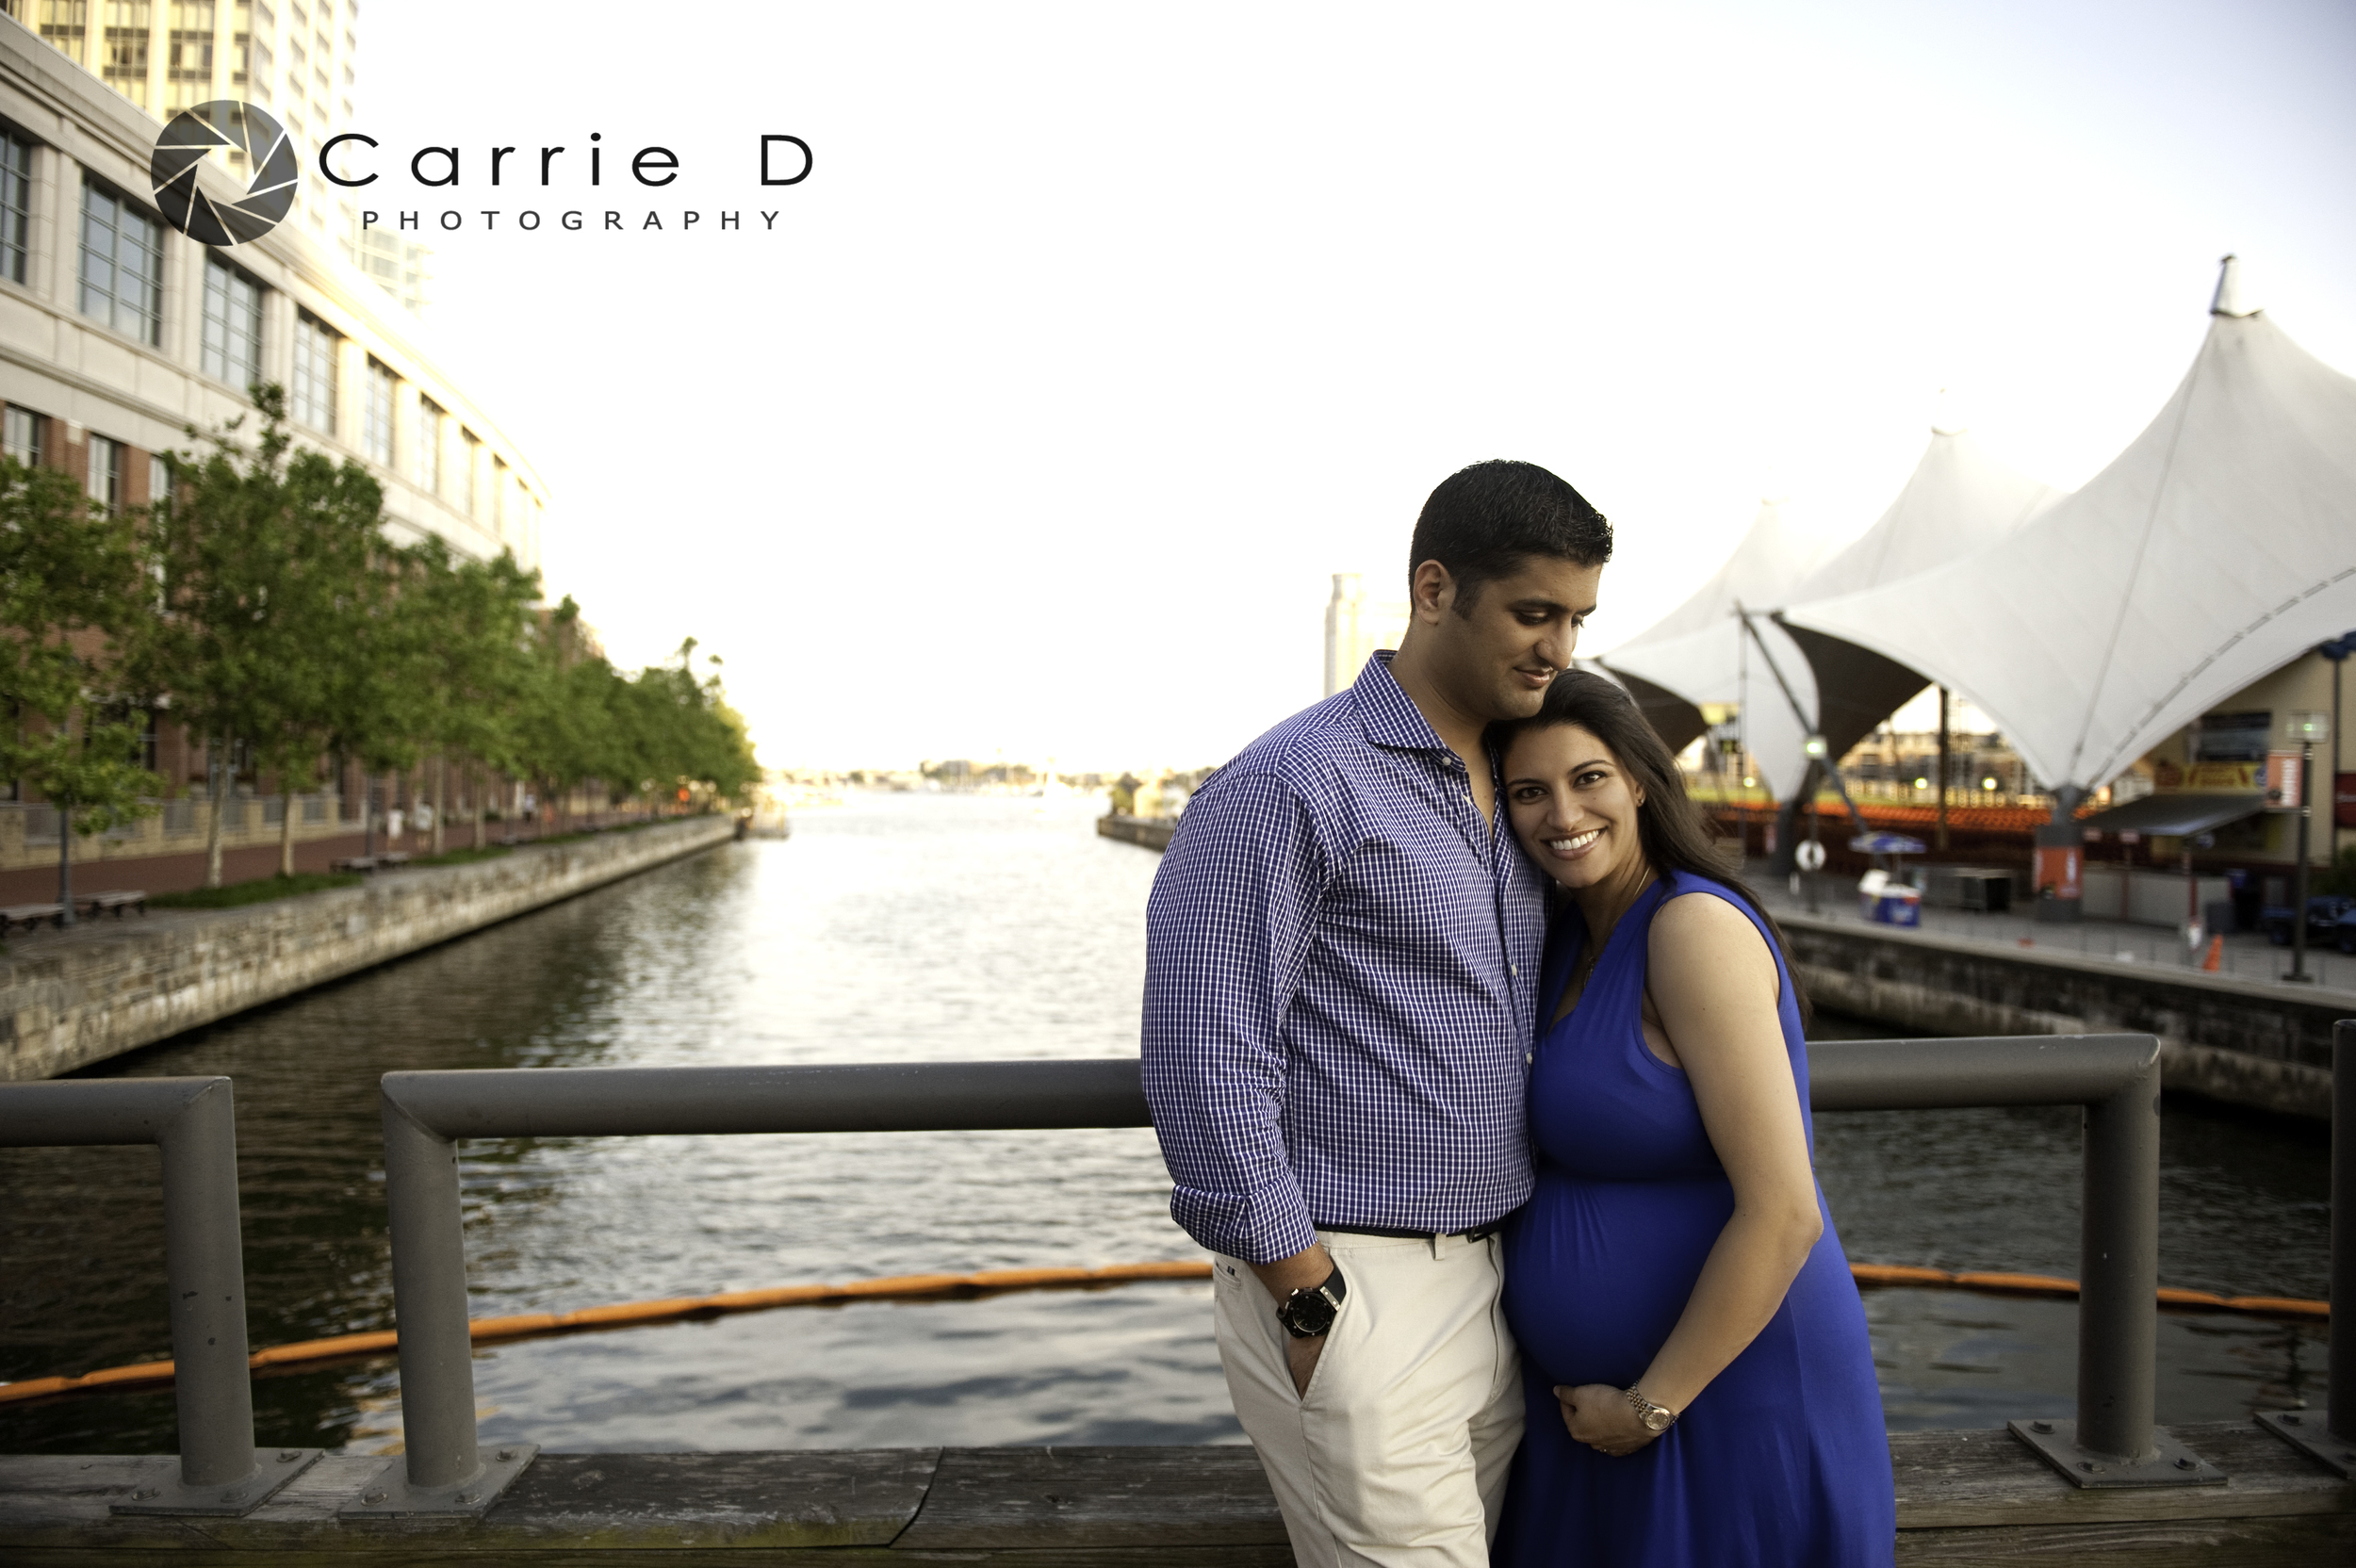 Baltimore Maternity Photographer - Baltimore Natural Light Maternity Photographer - Baltimore Natural Light Photographer - Baltimore Lifestyle Maternity Photographer - Baltimore Lifestyle Photographer - Inner Harbor Maternity Photographer - Inner Harbor Natural Light Photographer - Inner Harbor Natural Light Portrait Photographer - Inner Harbor Natural Light Maternity Photographer